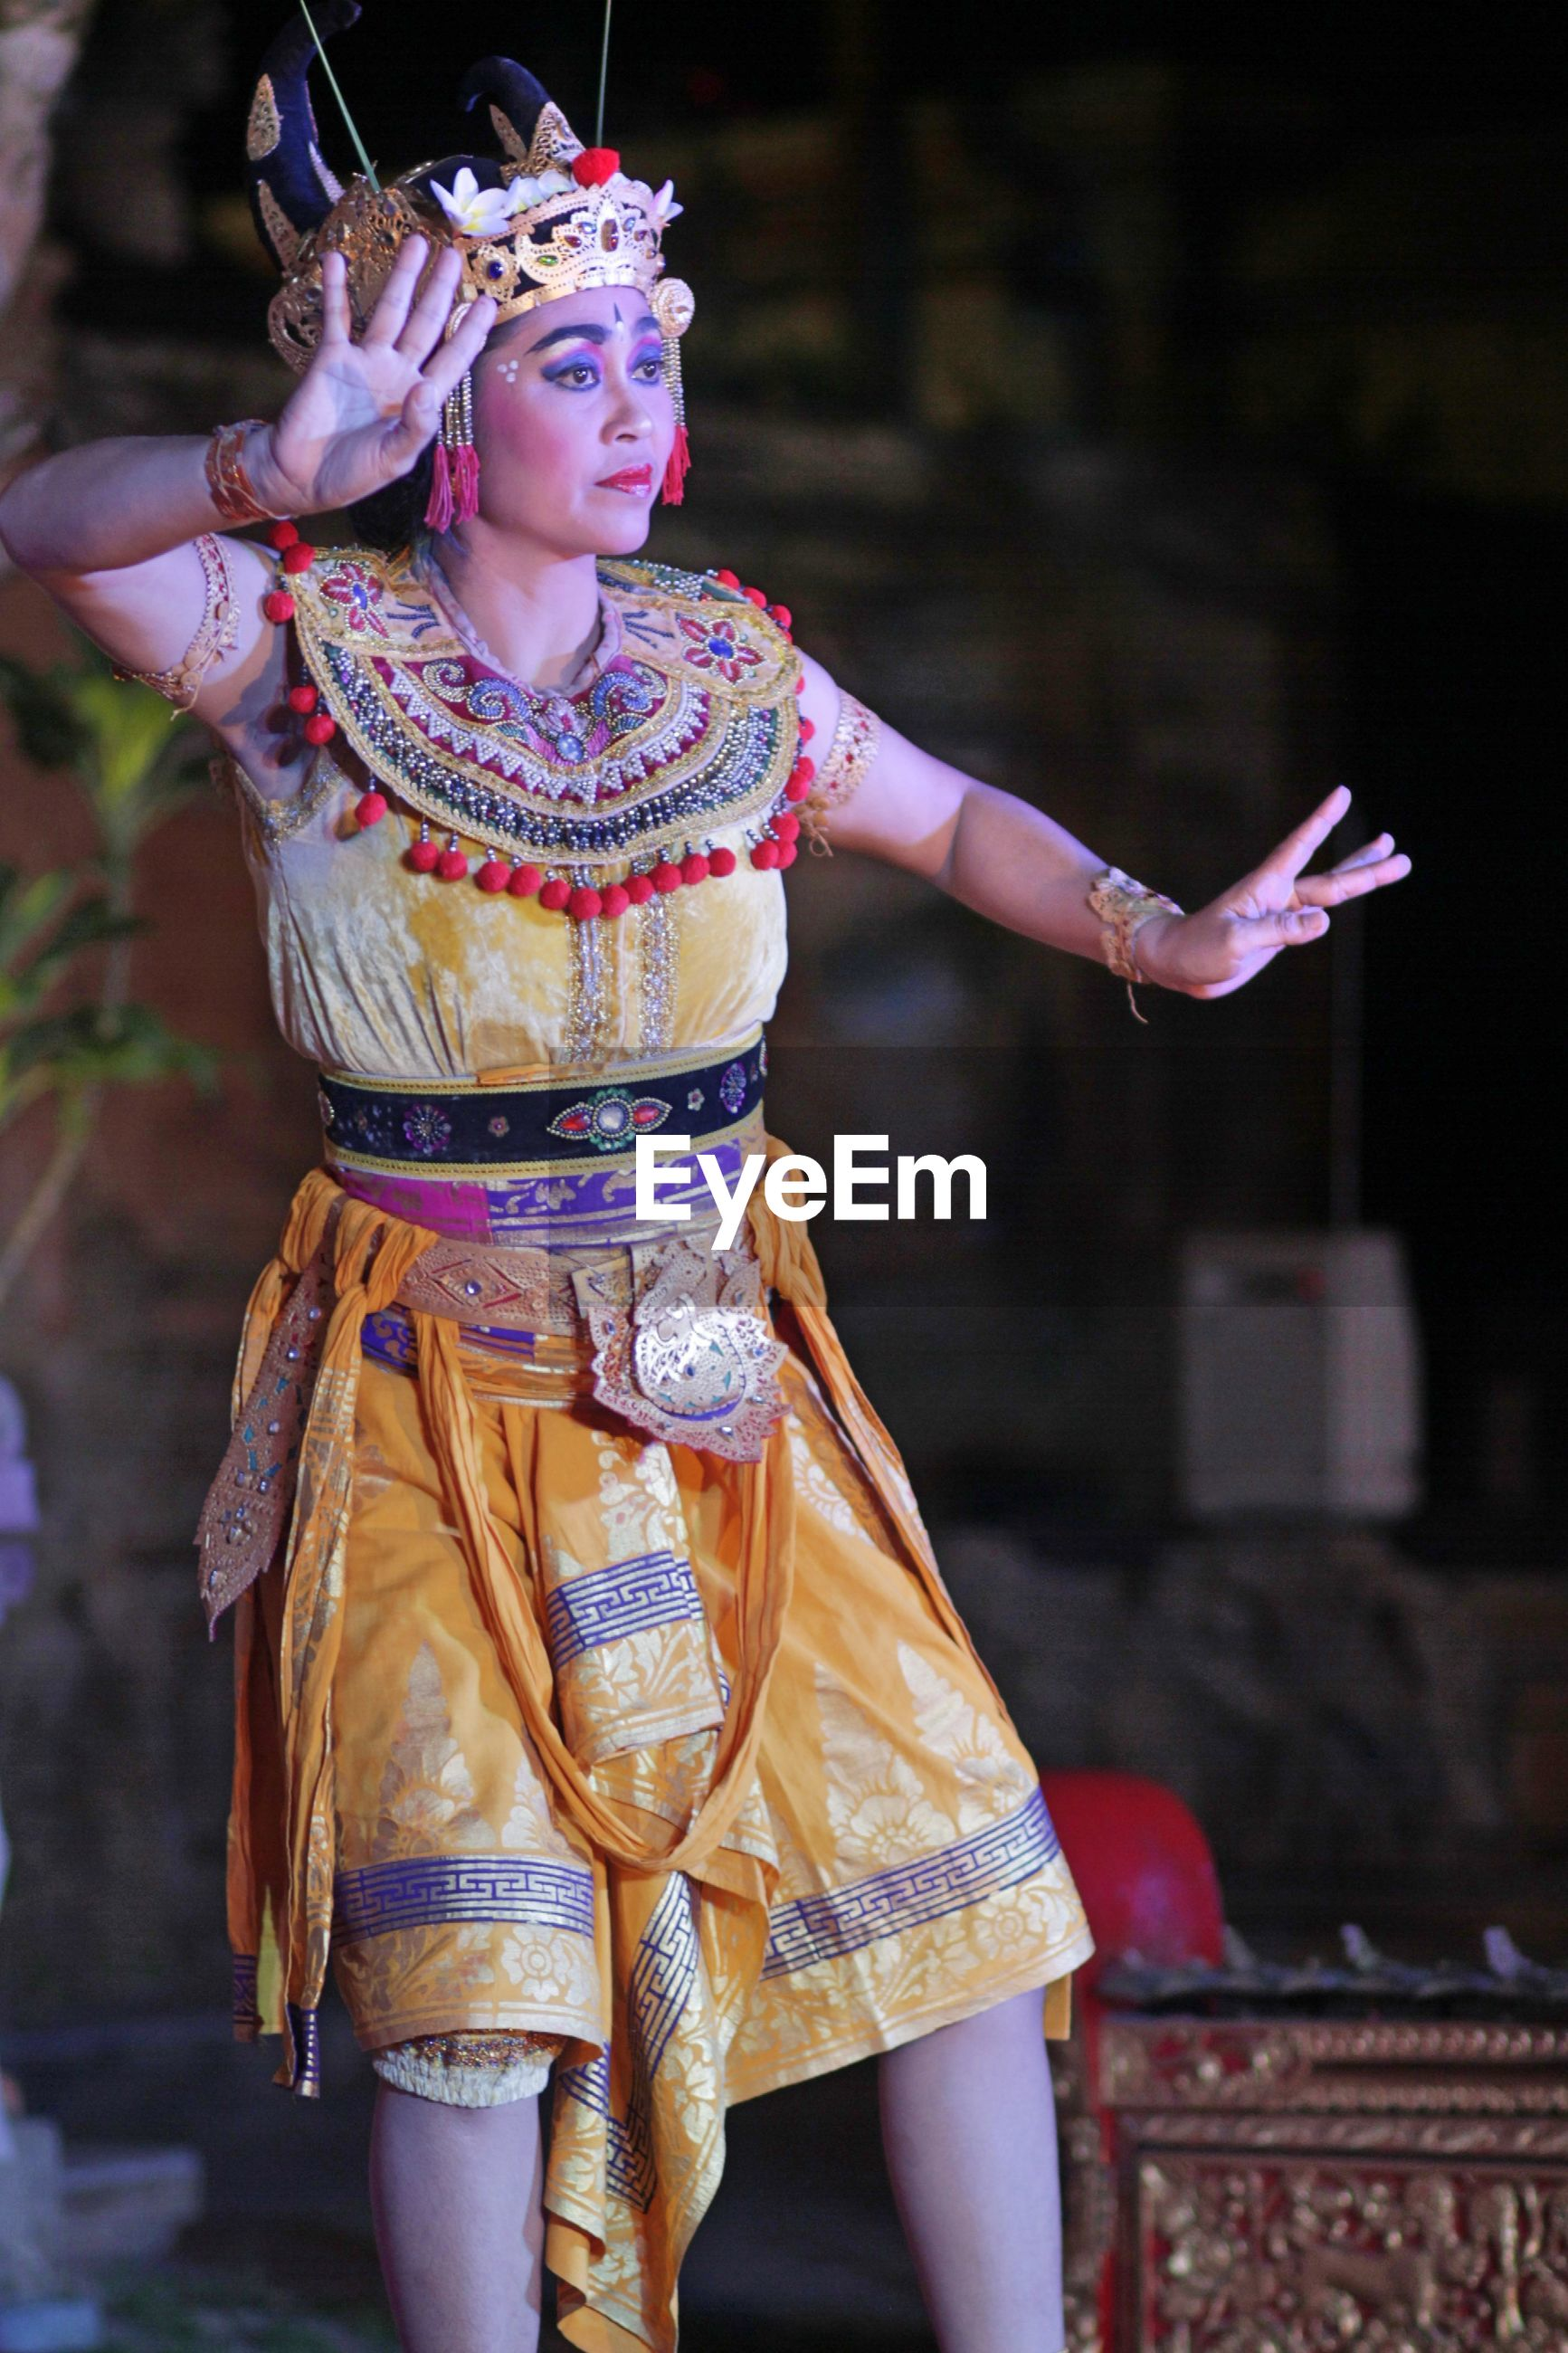 MIDSECTION OF WOMAN DANCING IN TRADITIONAL CLOTHING OUTDOORS